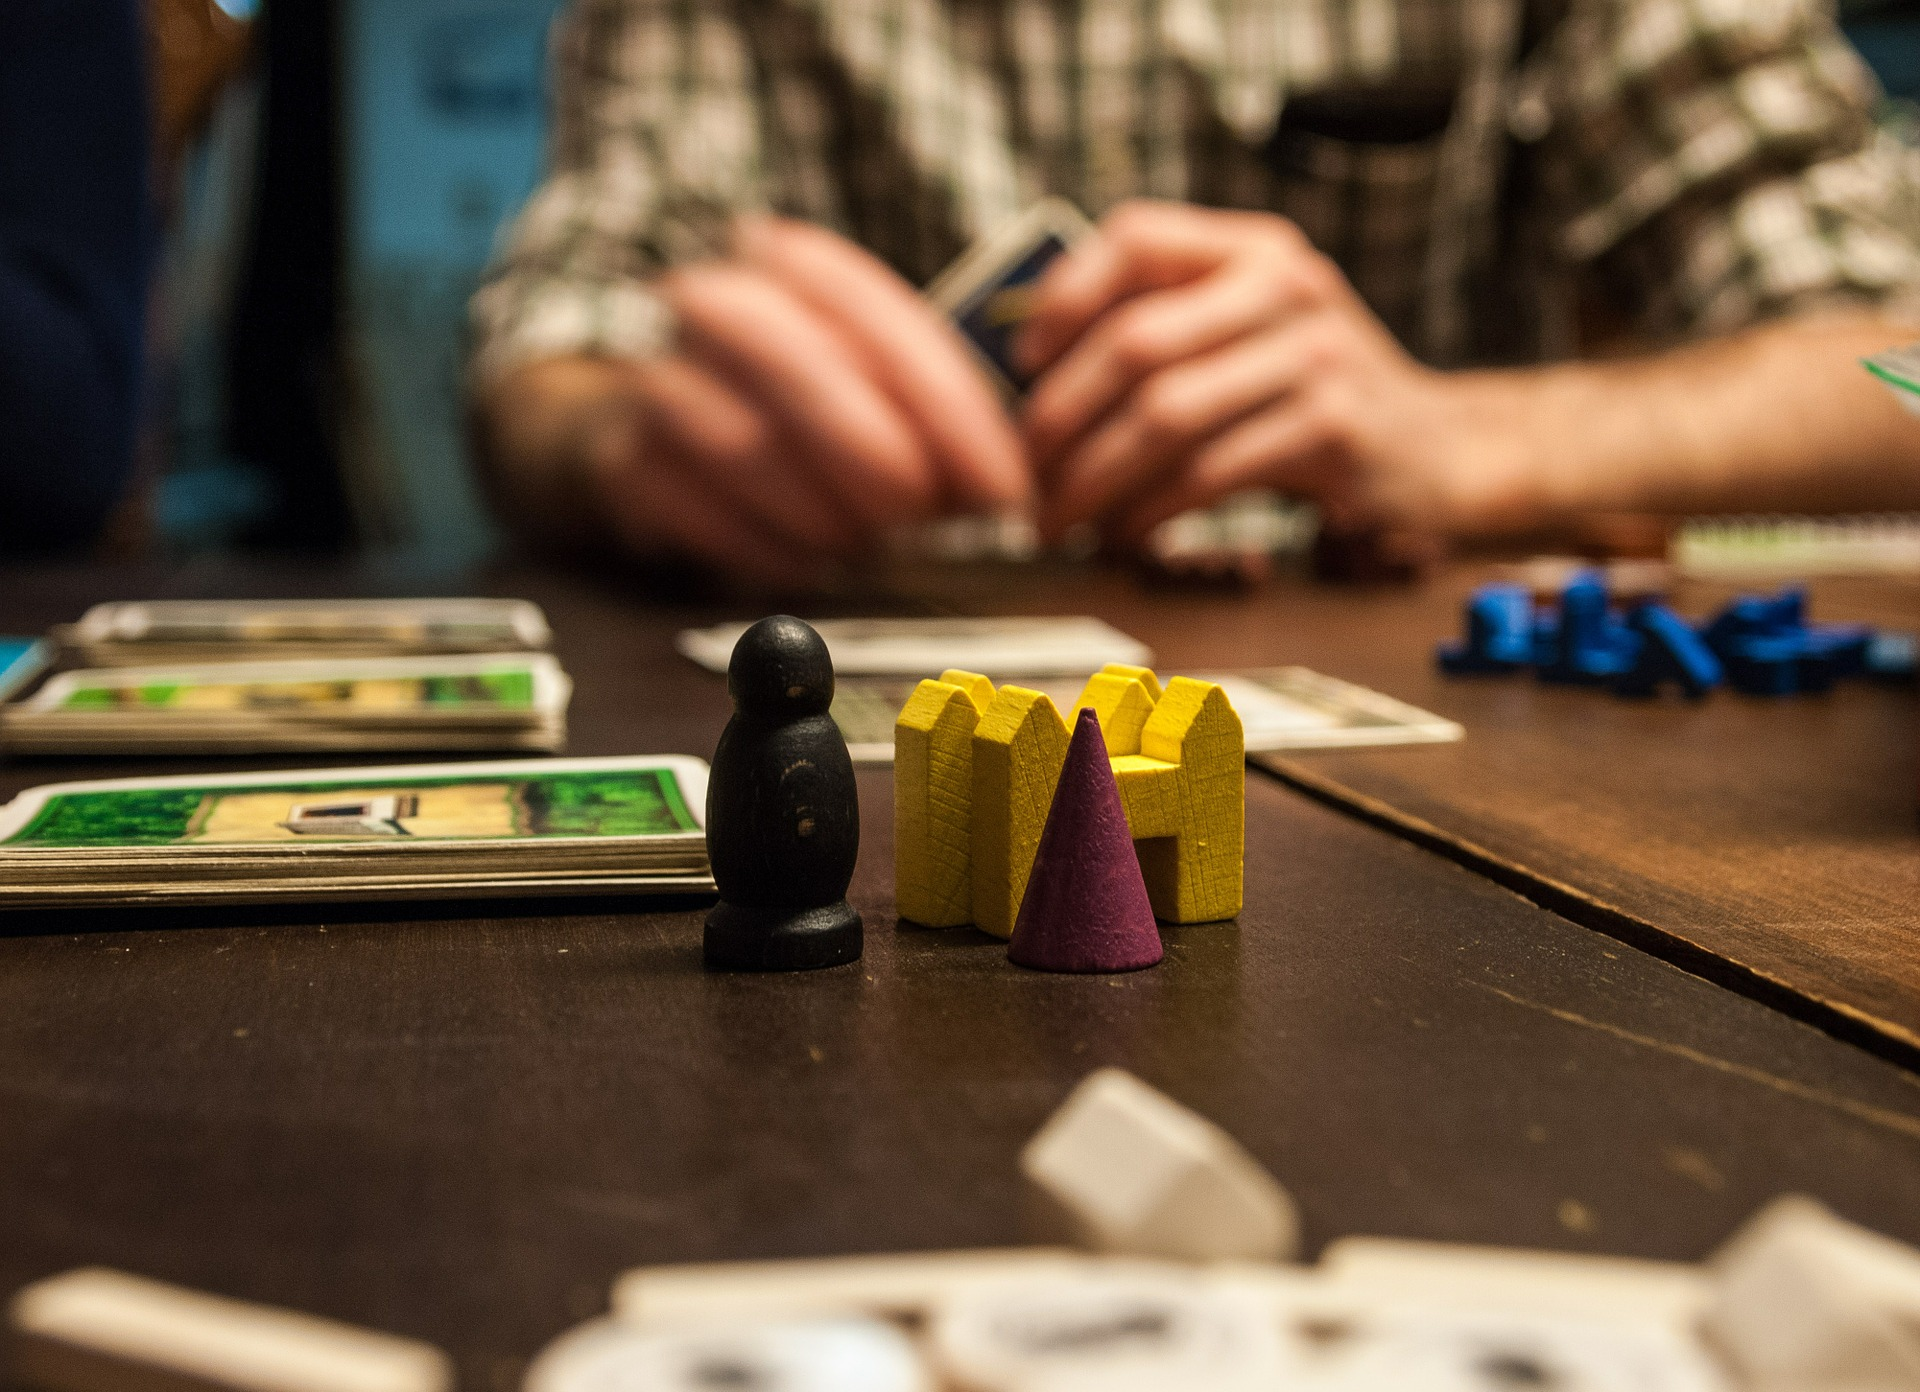 People playing a board game.